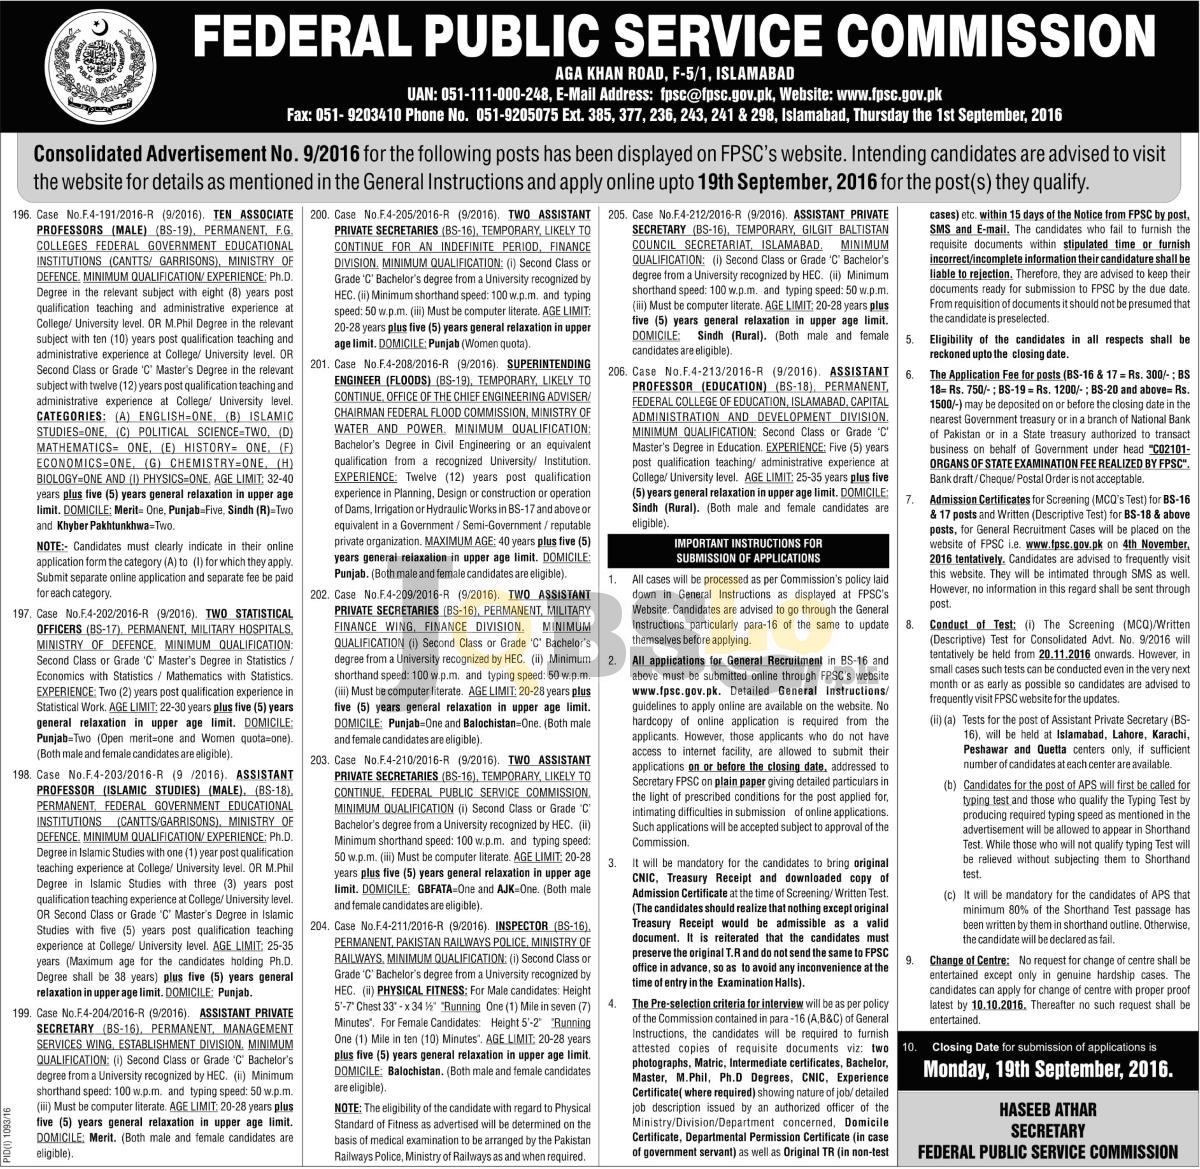 FPSC Jobs Sep 2016 Federal Public Service Commission Apply Online Latest Add